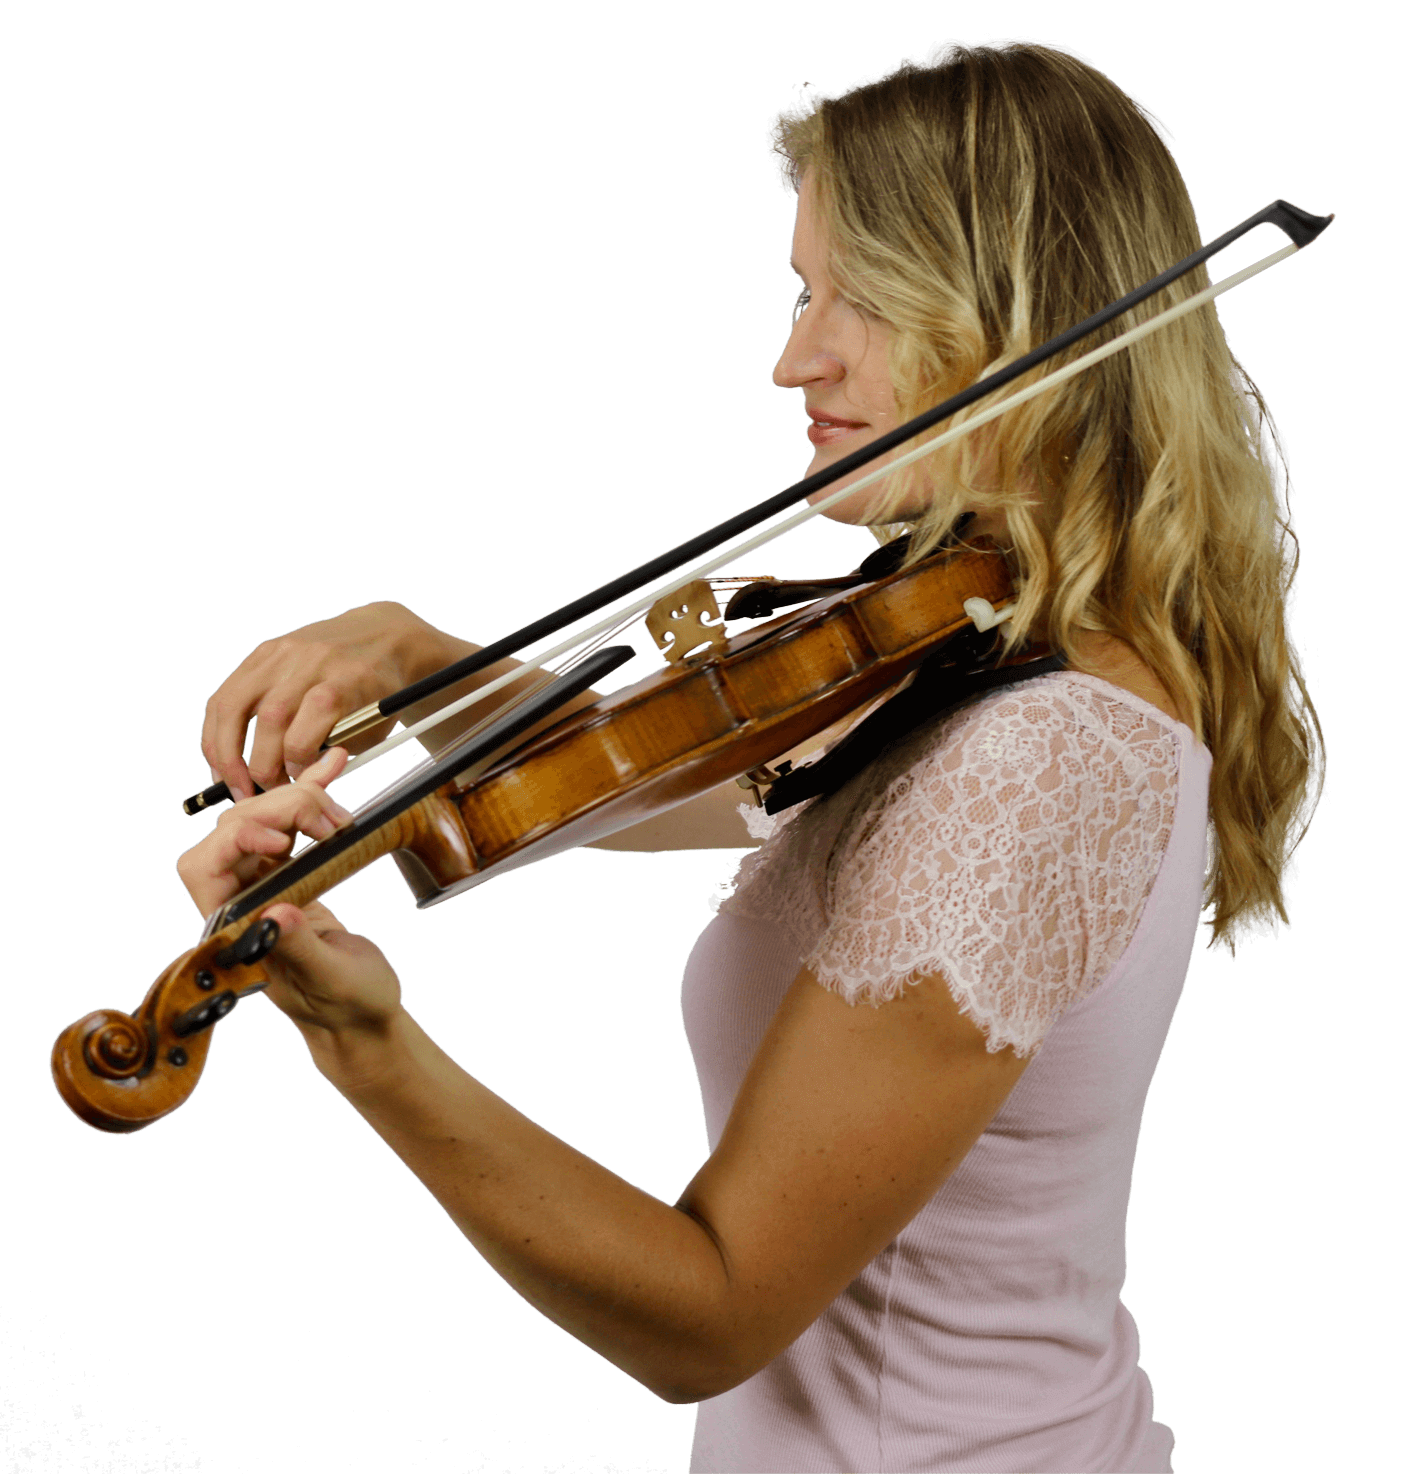 300+ Online violin lessons for FREE: Learn to play the